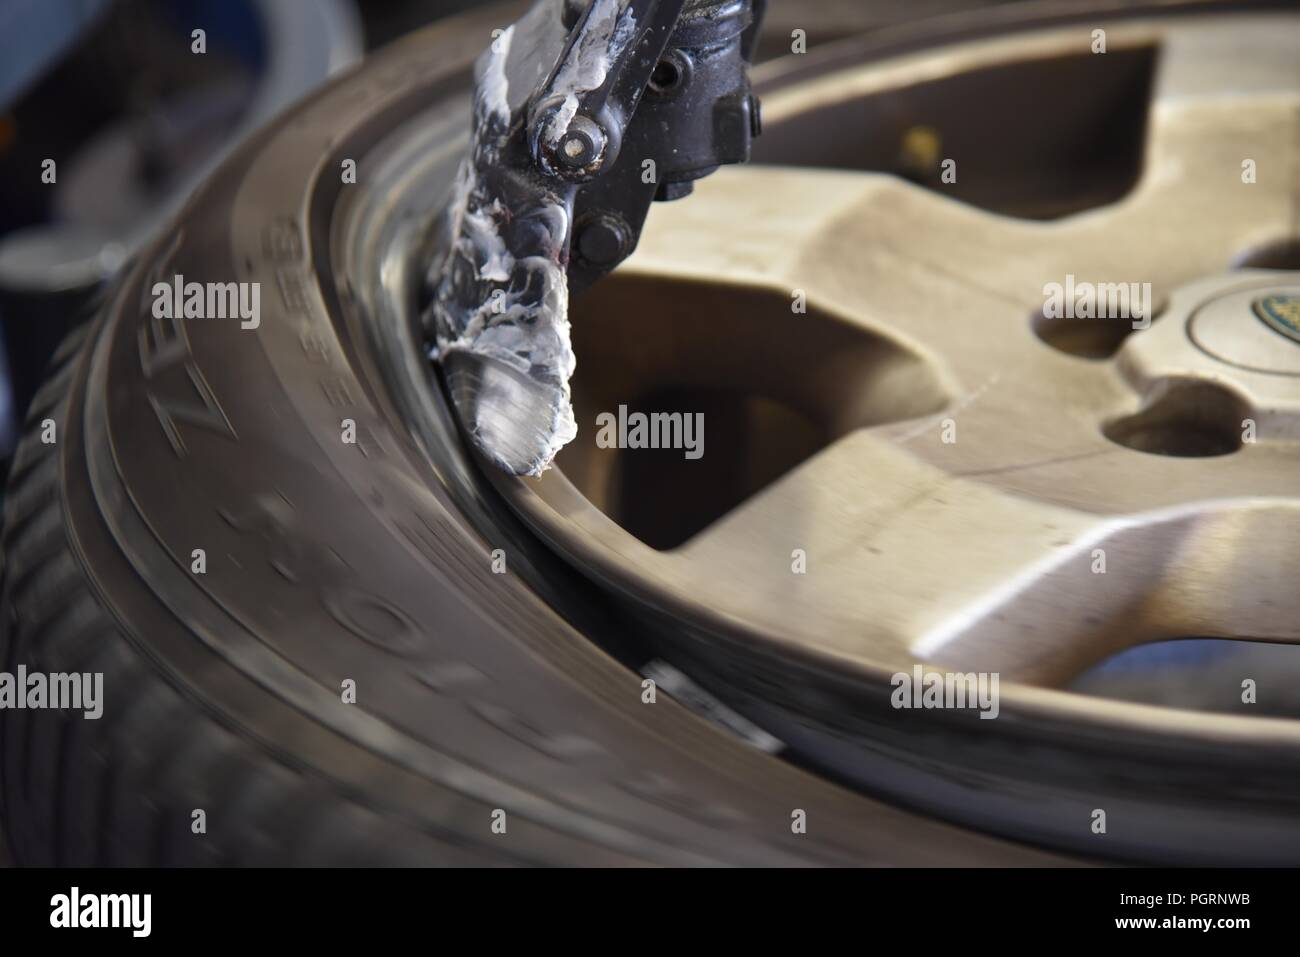 Tyre/tire fitting: a worn tyre being removed on a tyre changer - Stock Image